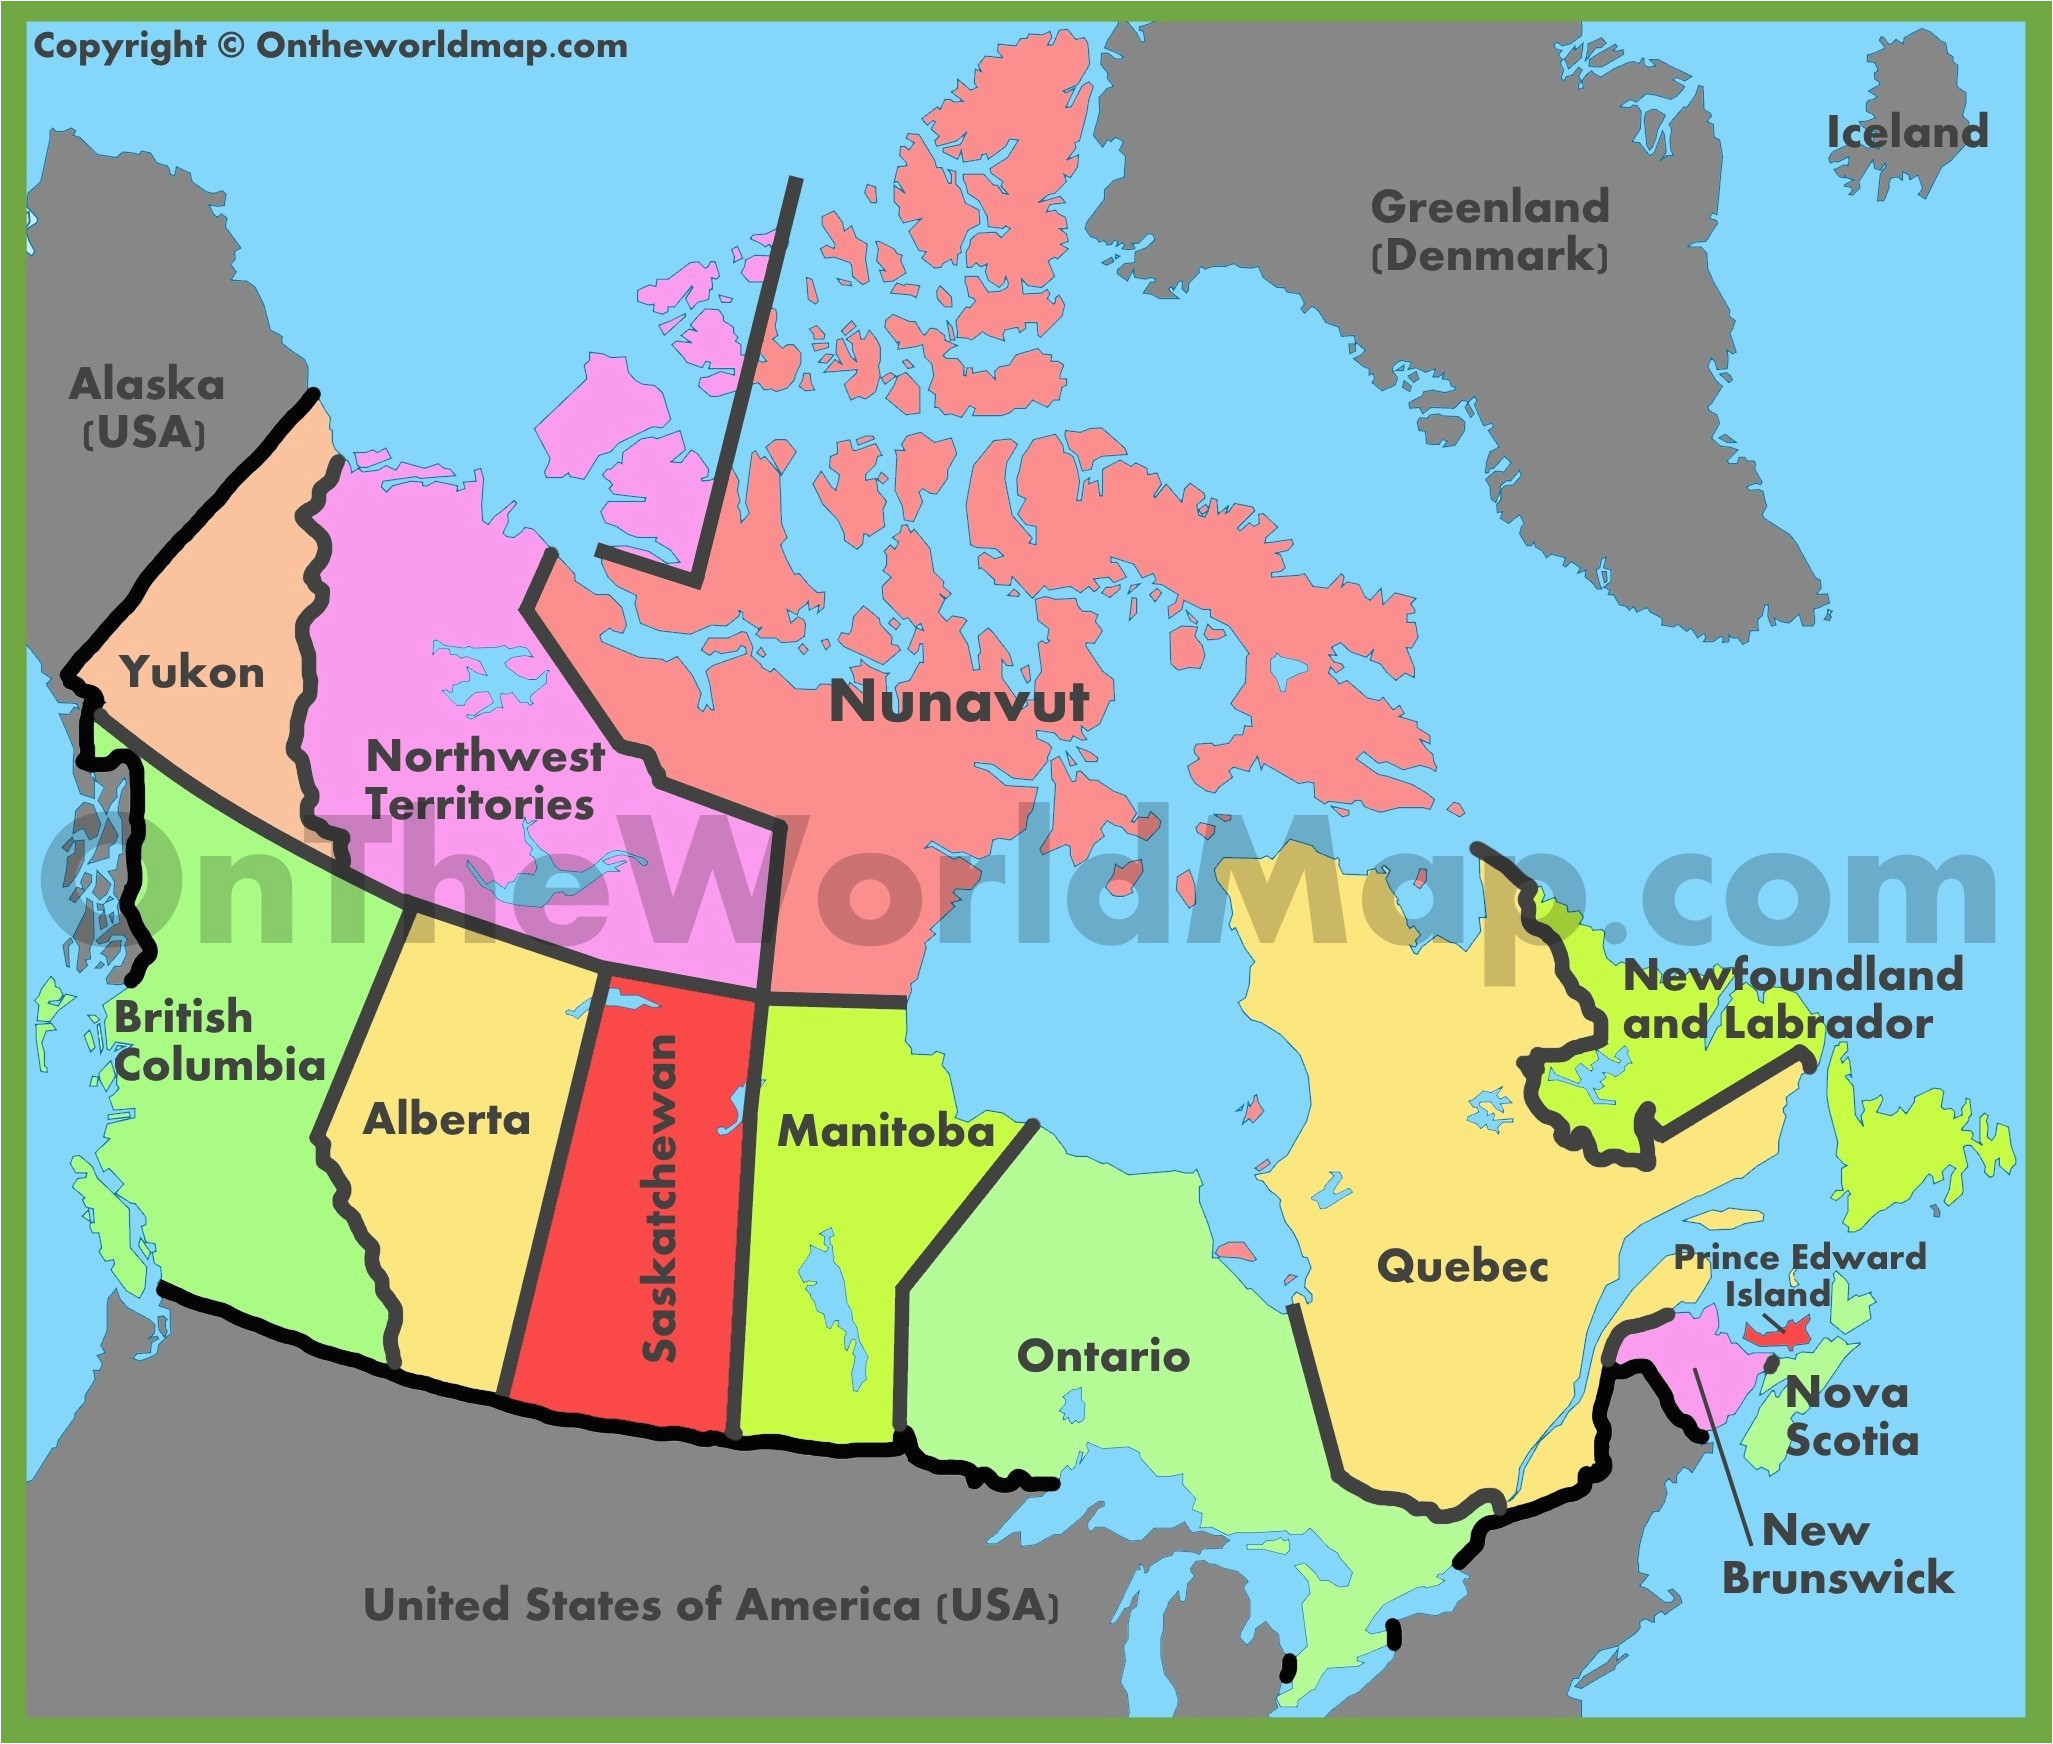 nielsen dma map luxury us election map simulator new usa canada map